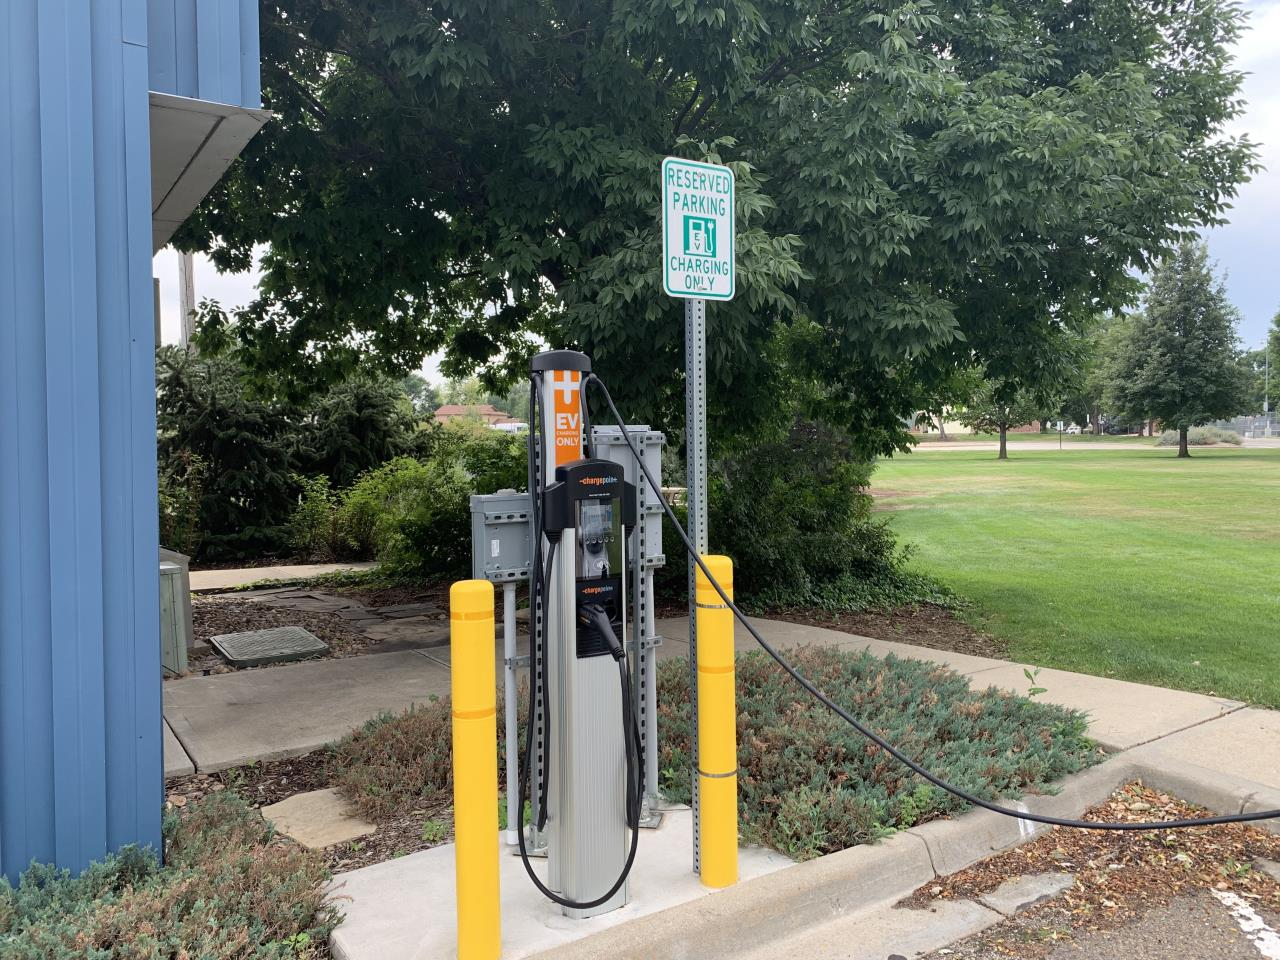 Electric vehicle charger picture